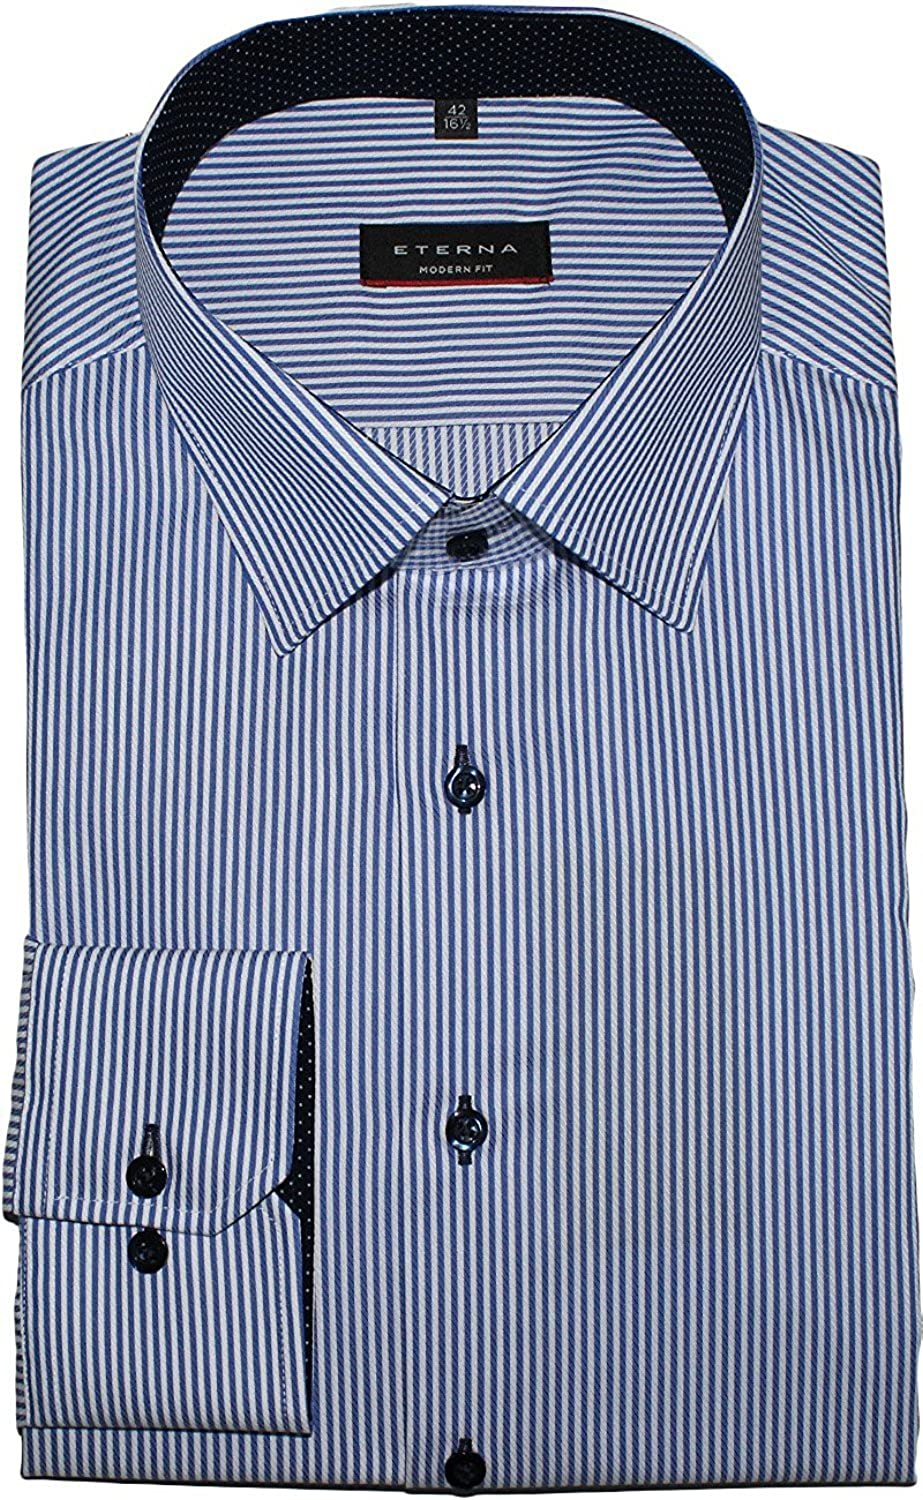 TALLA W45, Longitud manga larga. Eterna Long Sleeve Shirt Modern FIT Twill Striped